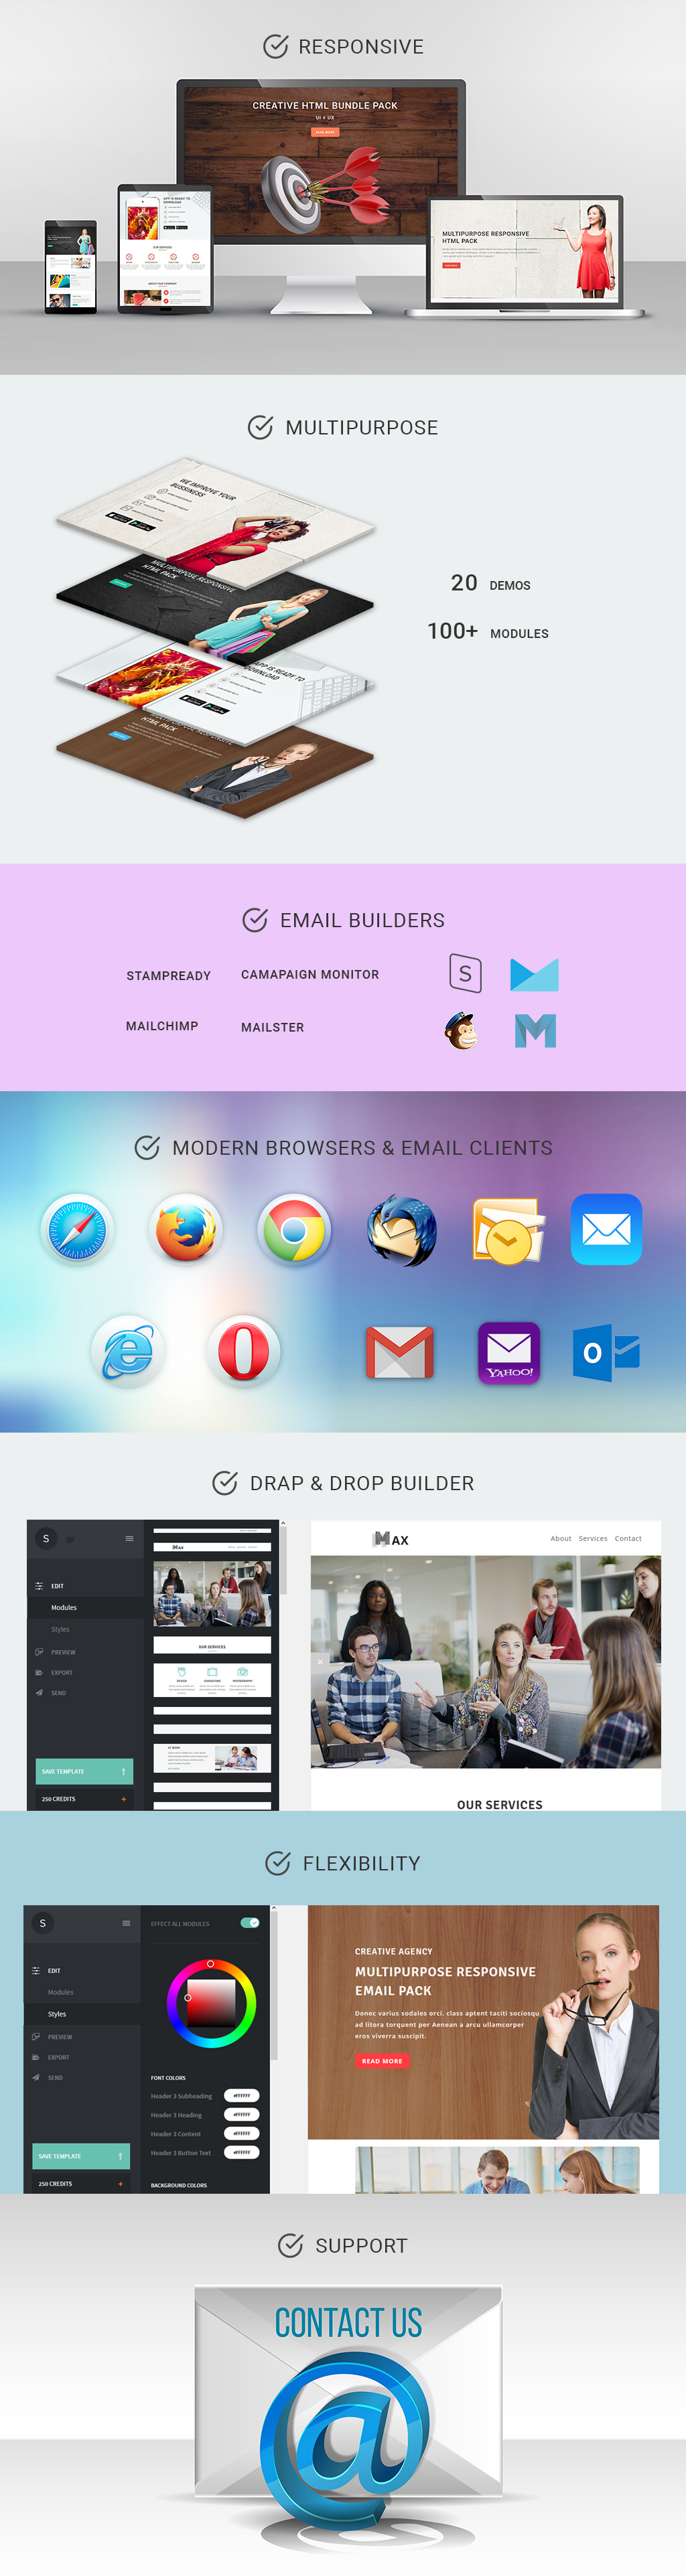 MAX - Multipurpose Responsive Email Pack with Stamp Ready Builder Access